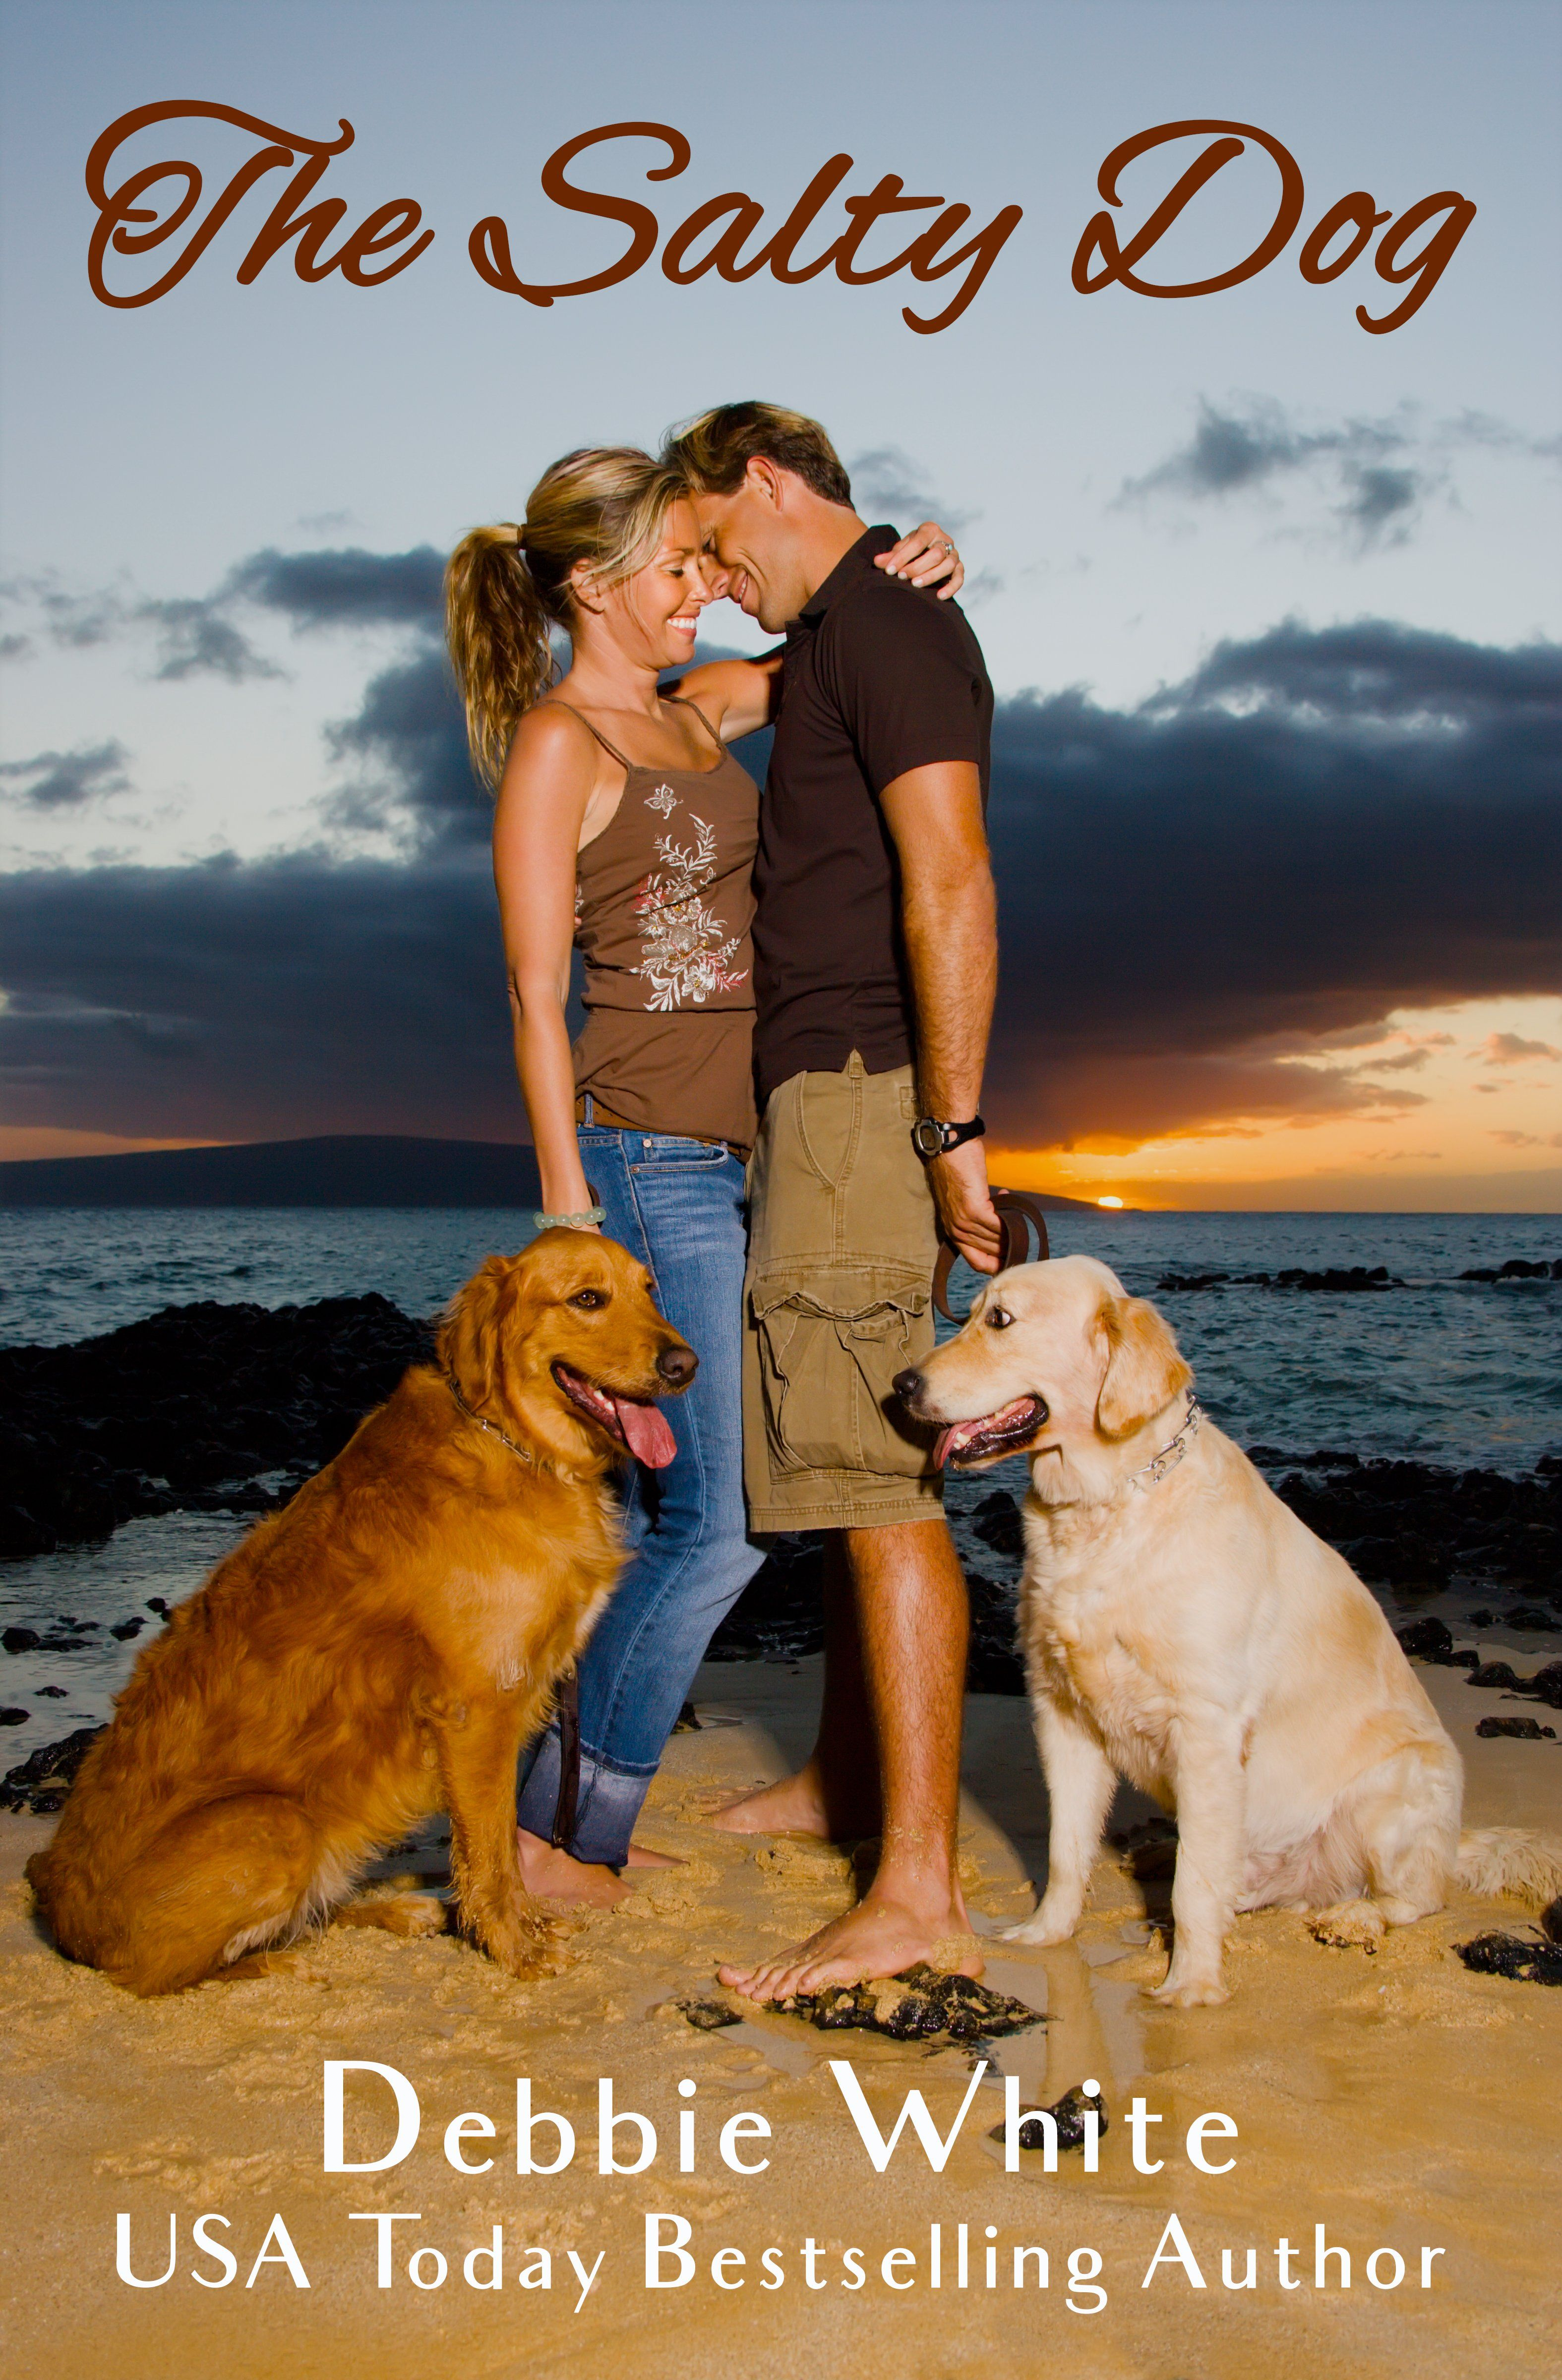 The Salty Dog (With images) Dog lovers, Dogs, Salty dog